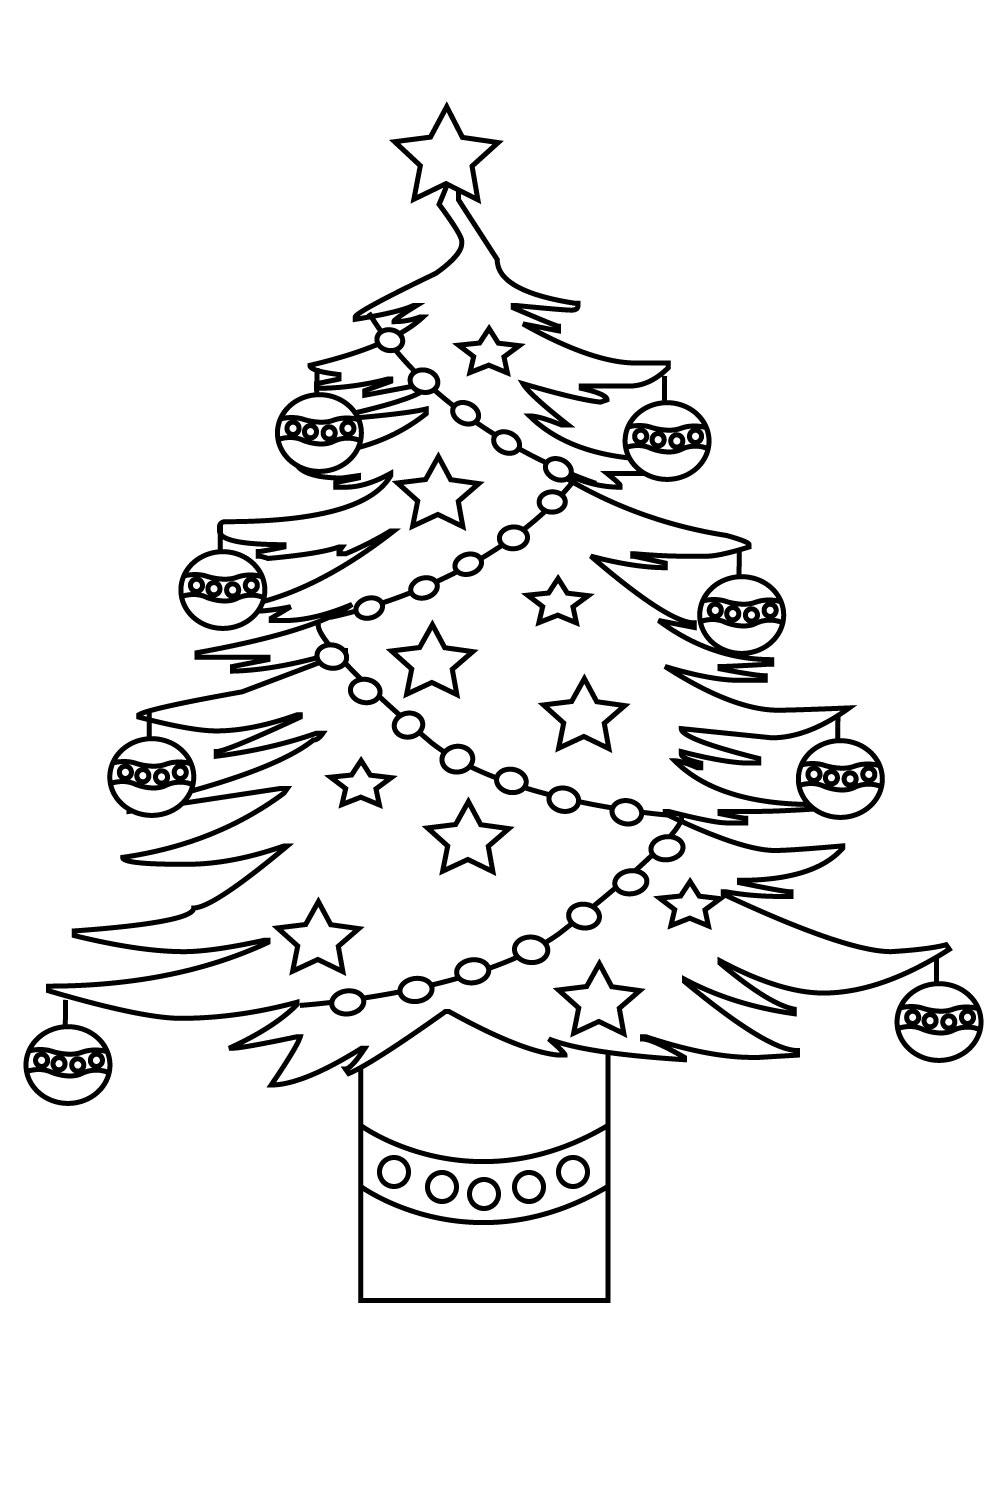 tree coloring pages children - photo#46